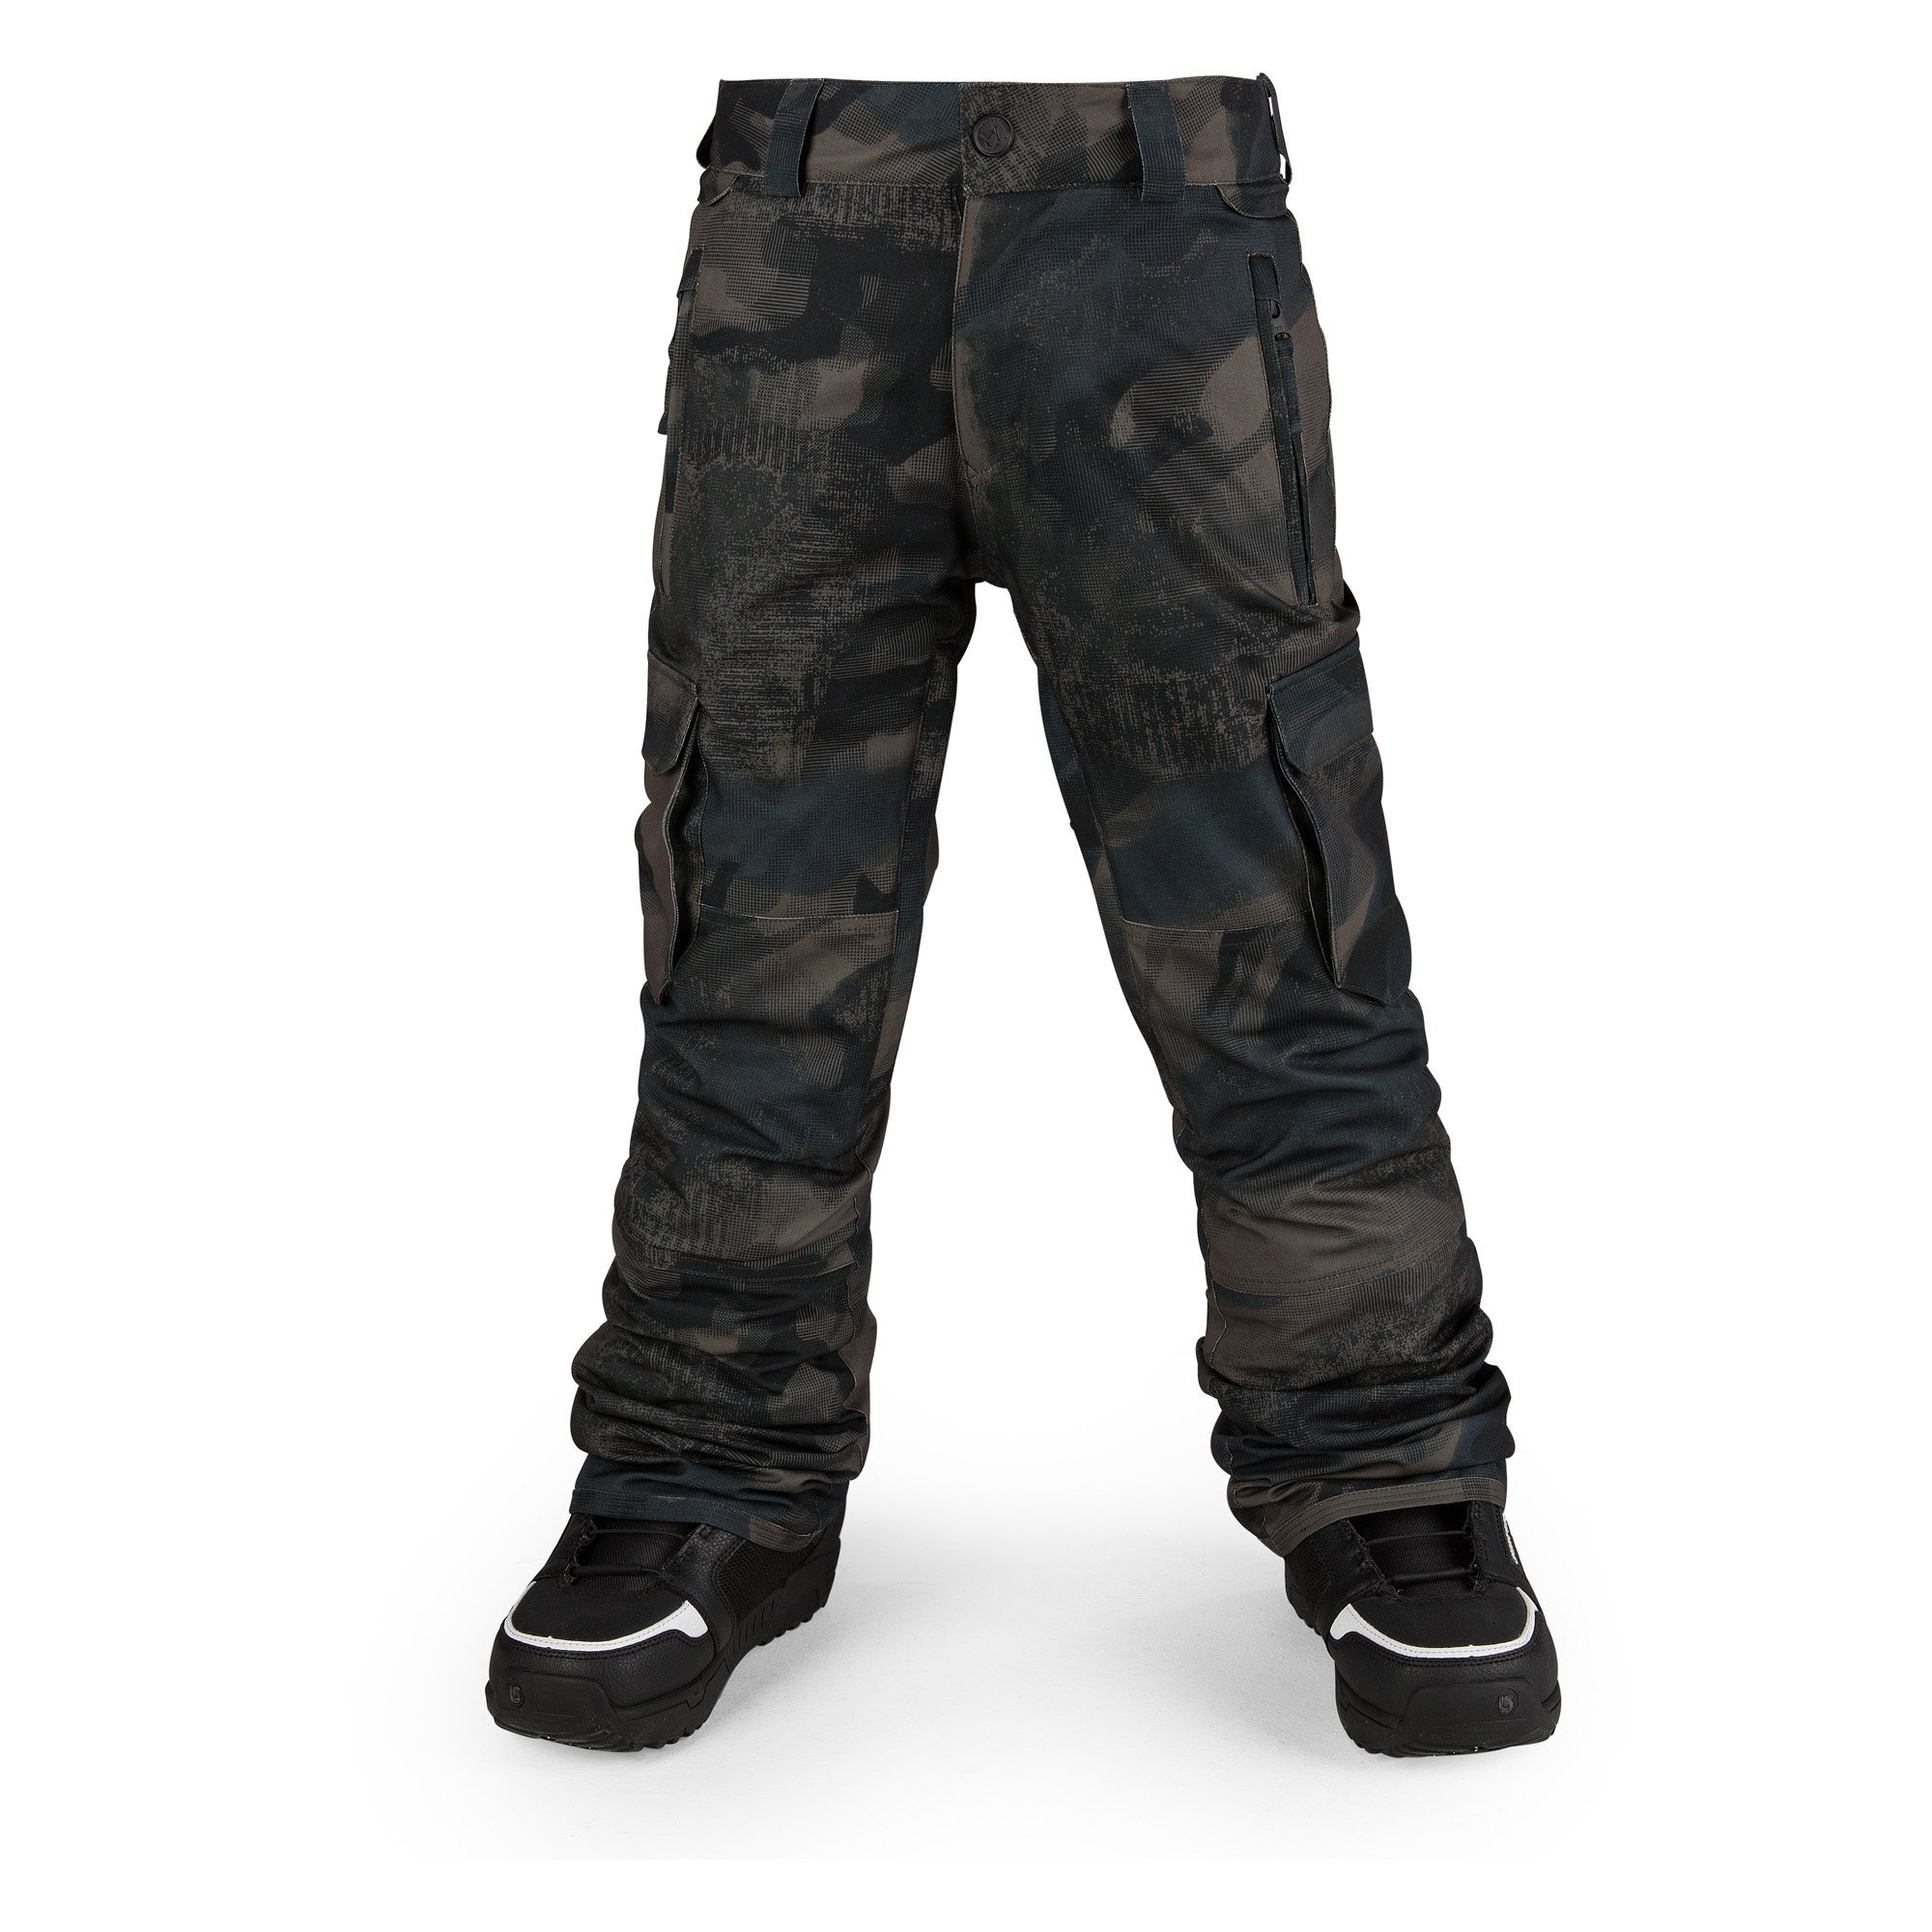 Volcom Big Boys' Cargo Insulated Pant, Camouflage, S by Volcom